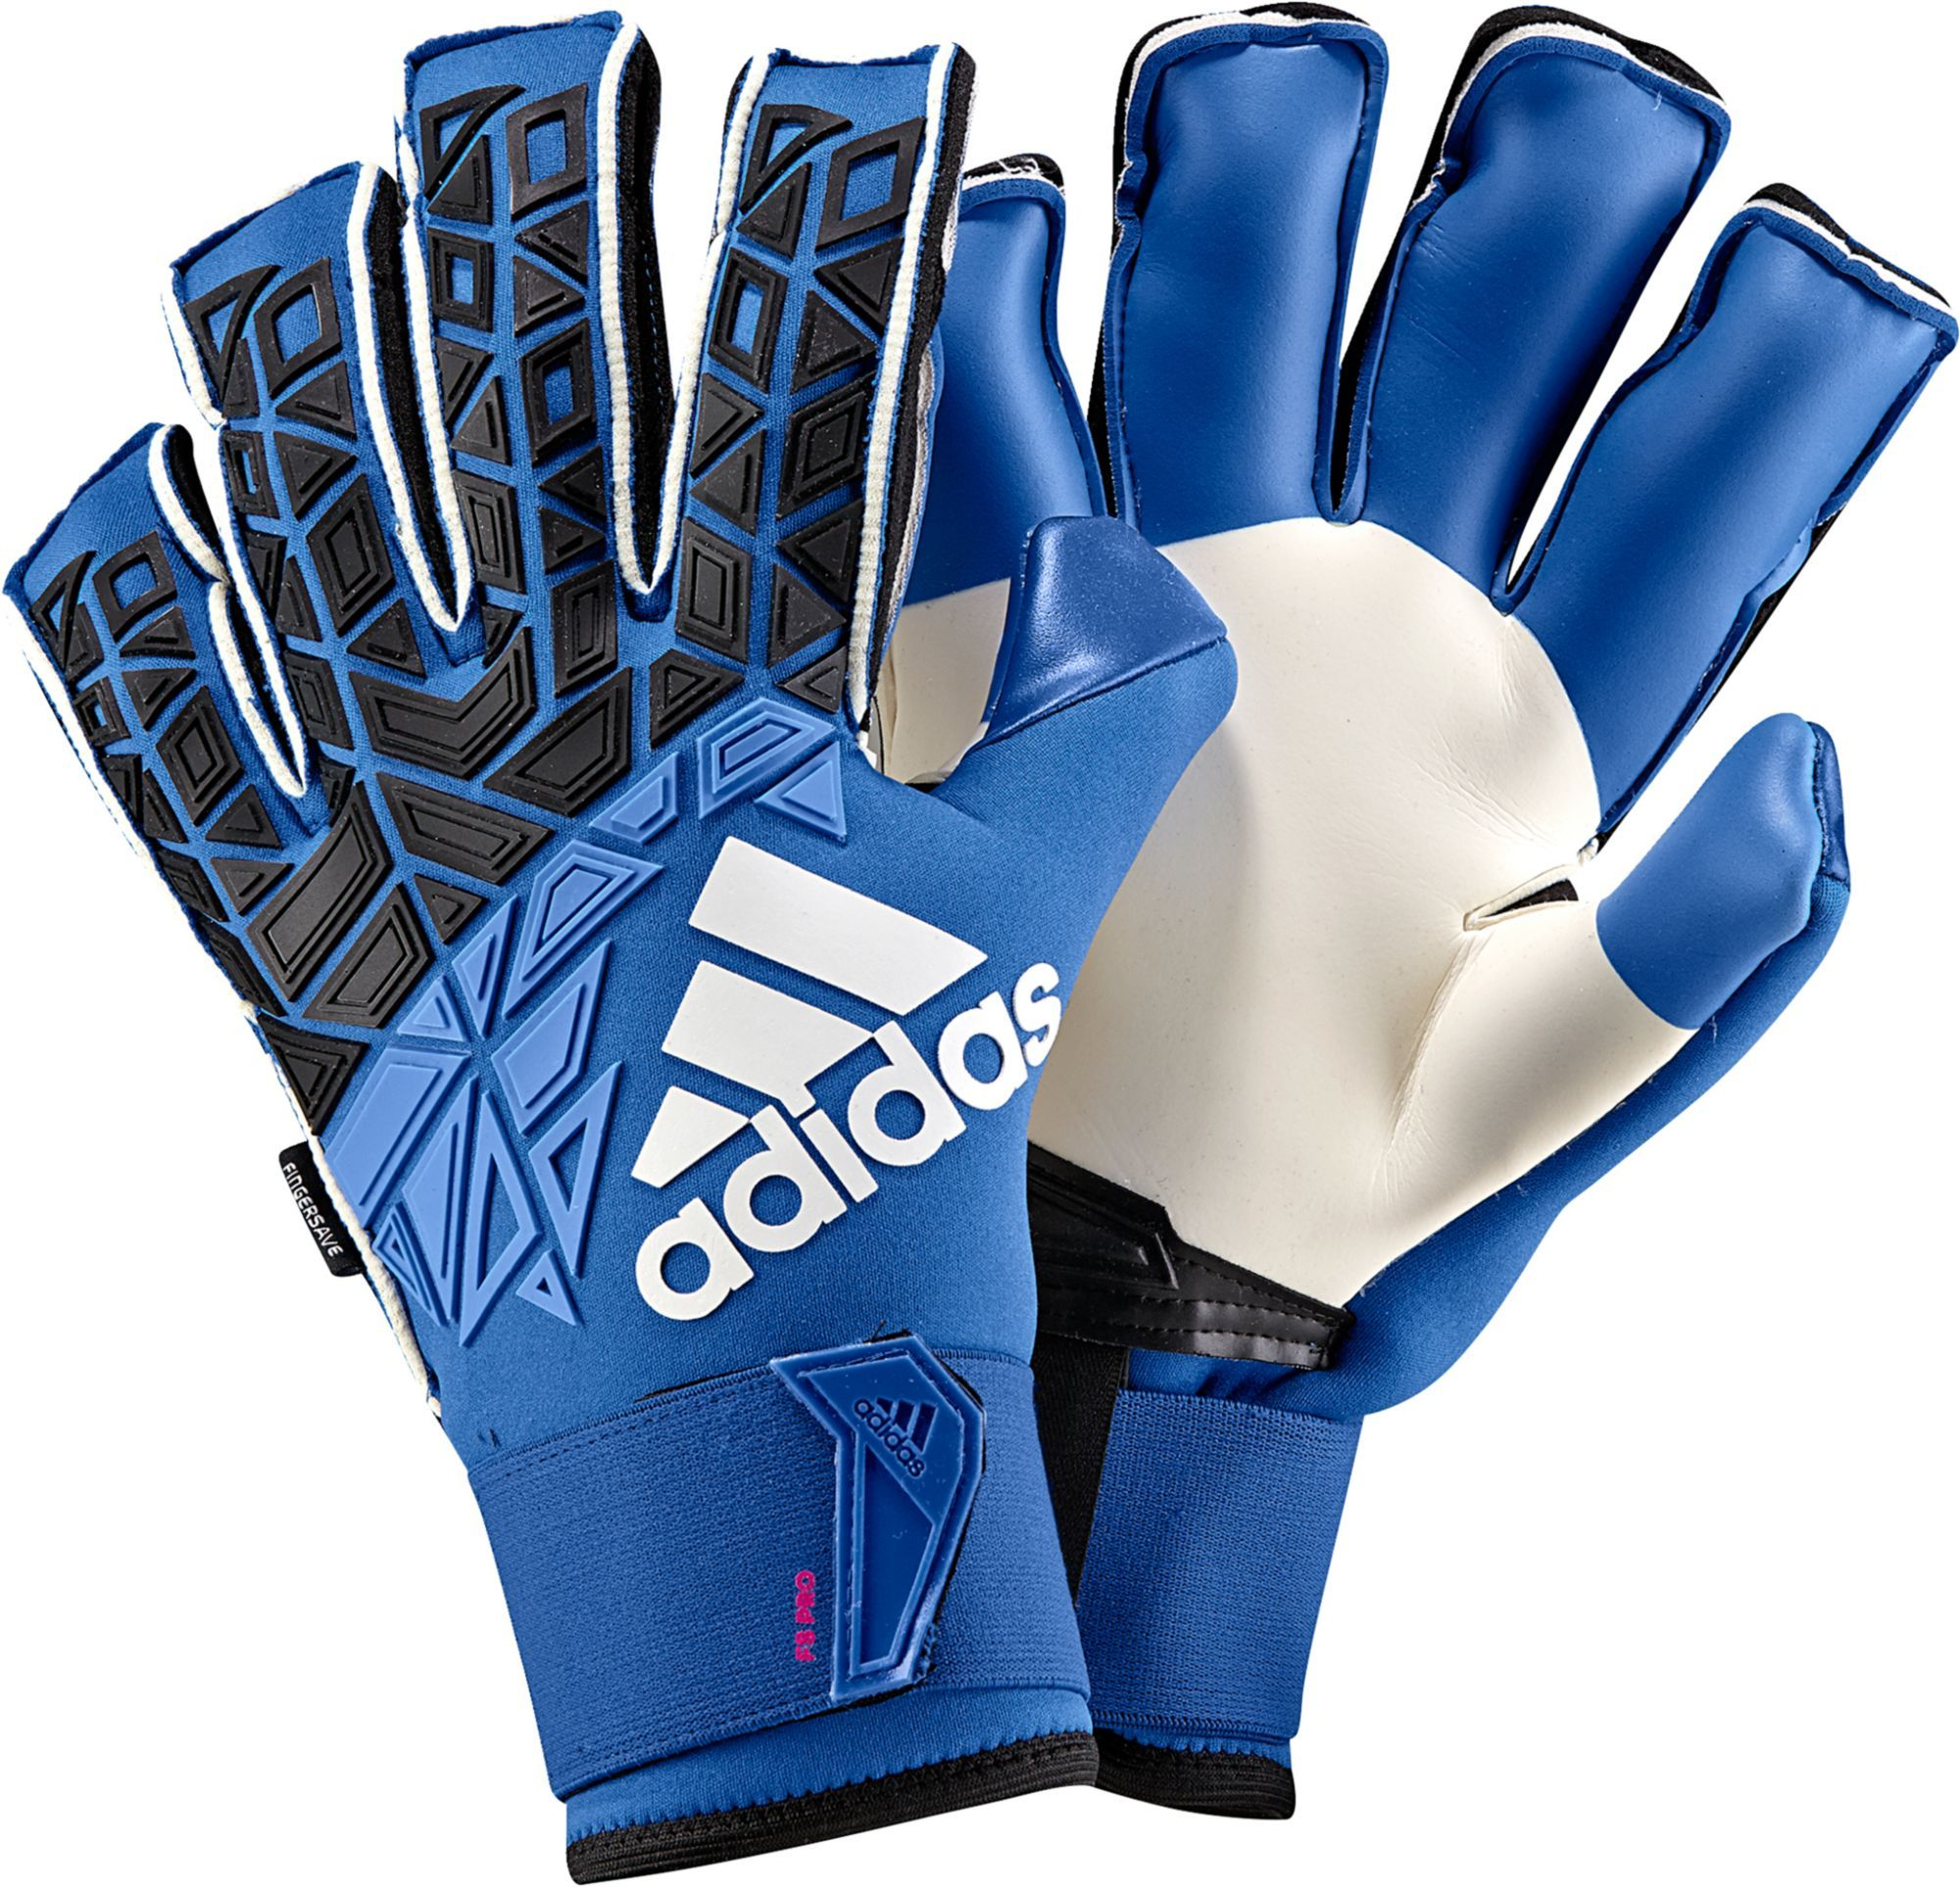 8cbab565 adidas Ace Trans Fingersave Pro Soccer Goalkeeper Gloves in 2019 ...